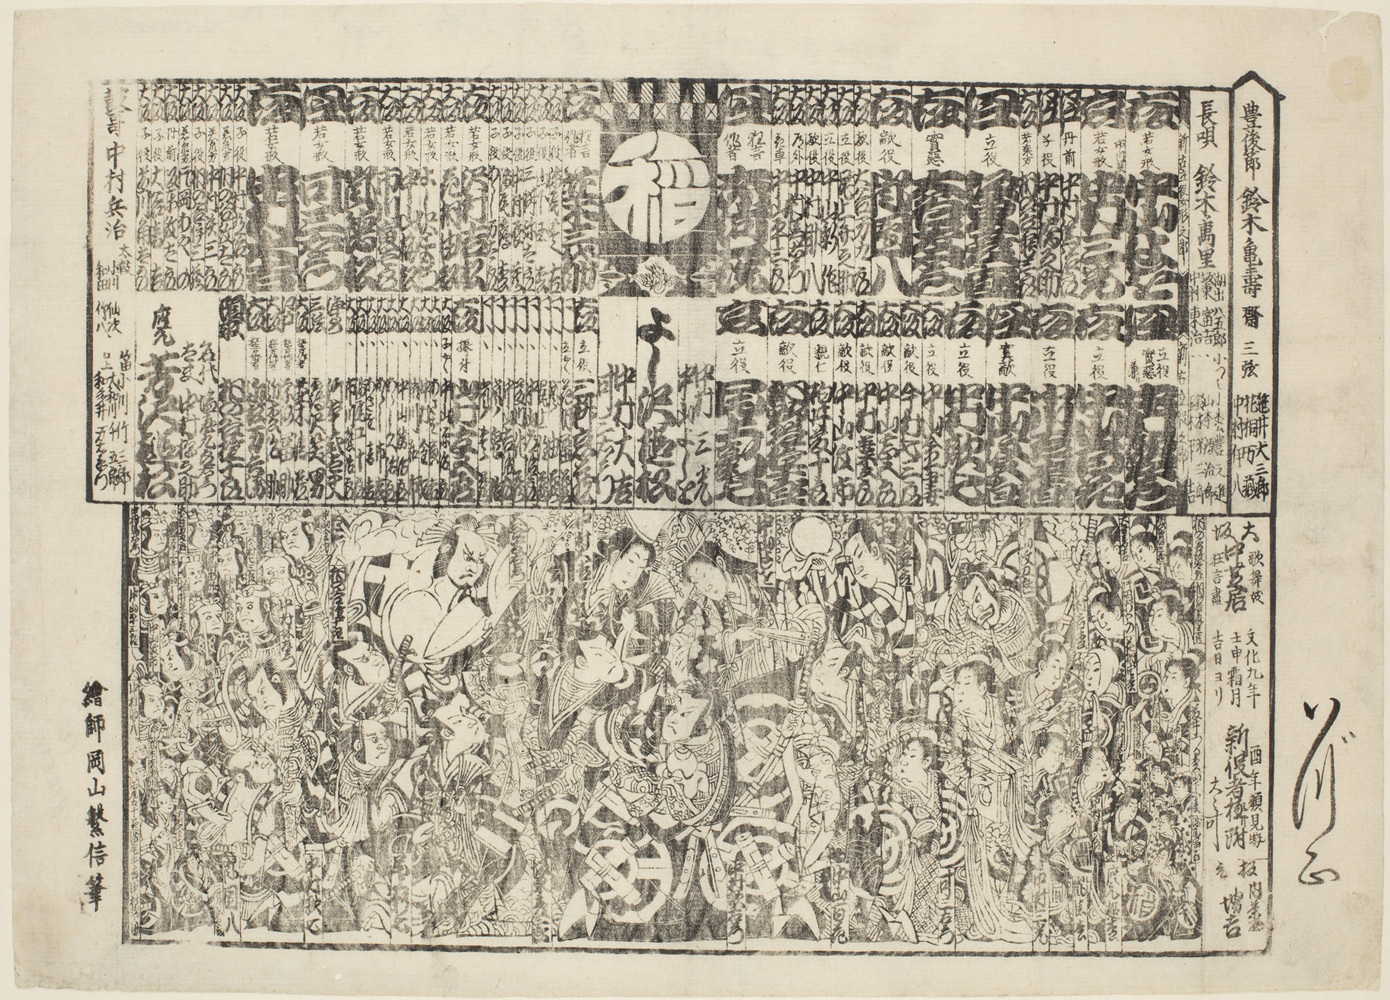 A black and white Japanese playbill print. The top half is Japanese text. The bottom half is a scene of many faces and figures in traditional dress.